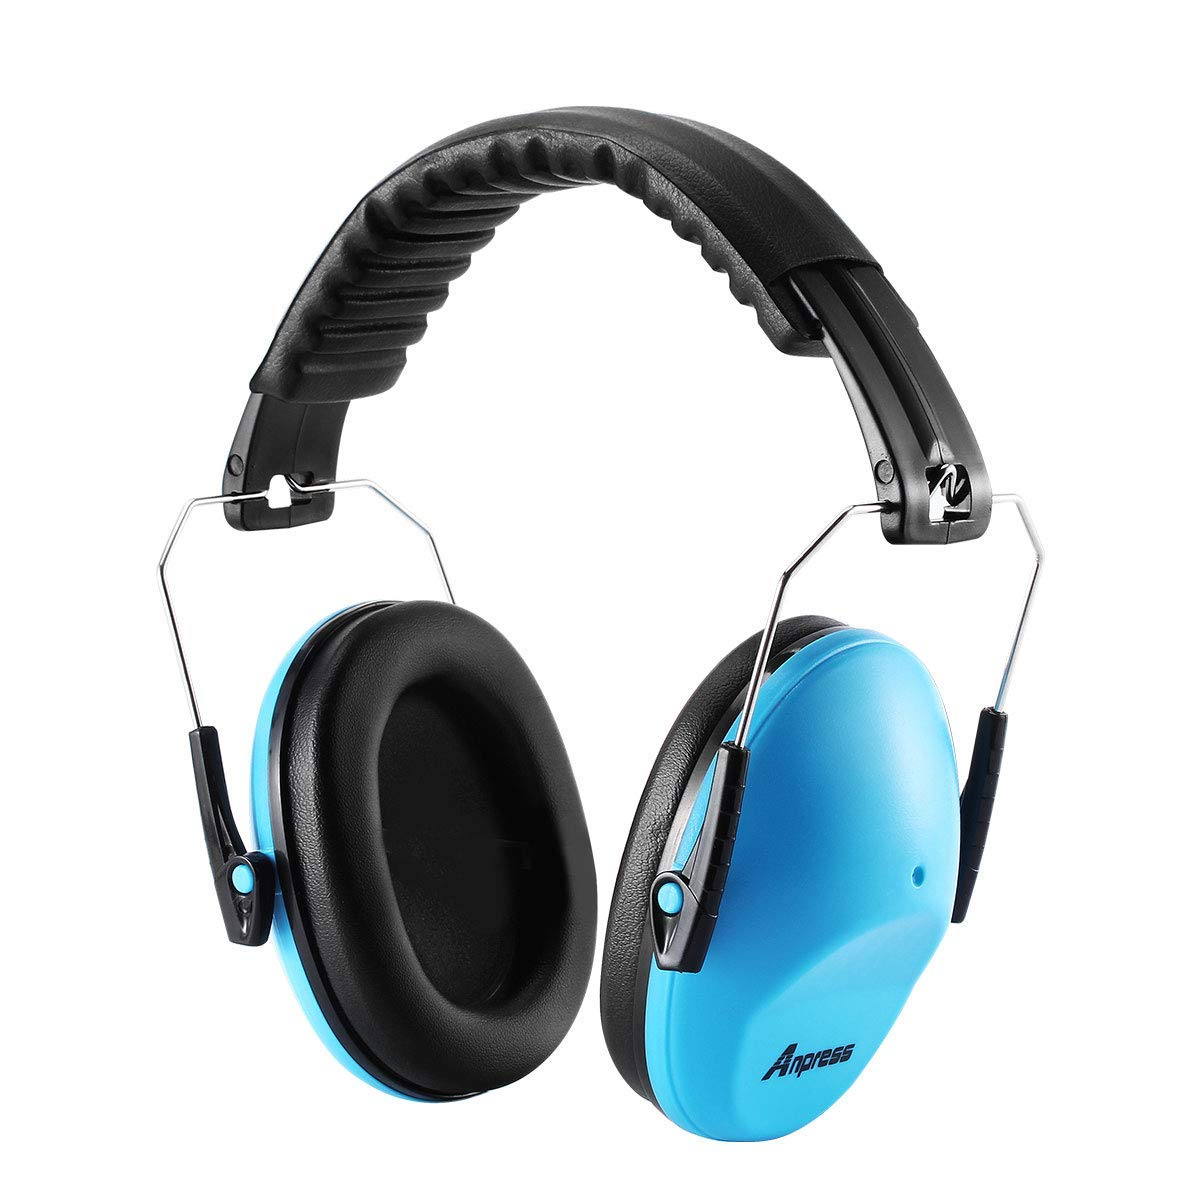 Ear Protector Workplace Safety Supplies Brand Noise Reduction Sound Ear Protector Earmuffs Tactical Headset Hearing Protection Ear Muffs Hunting Shooting Sleep Work Reasonable Price